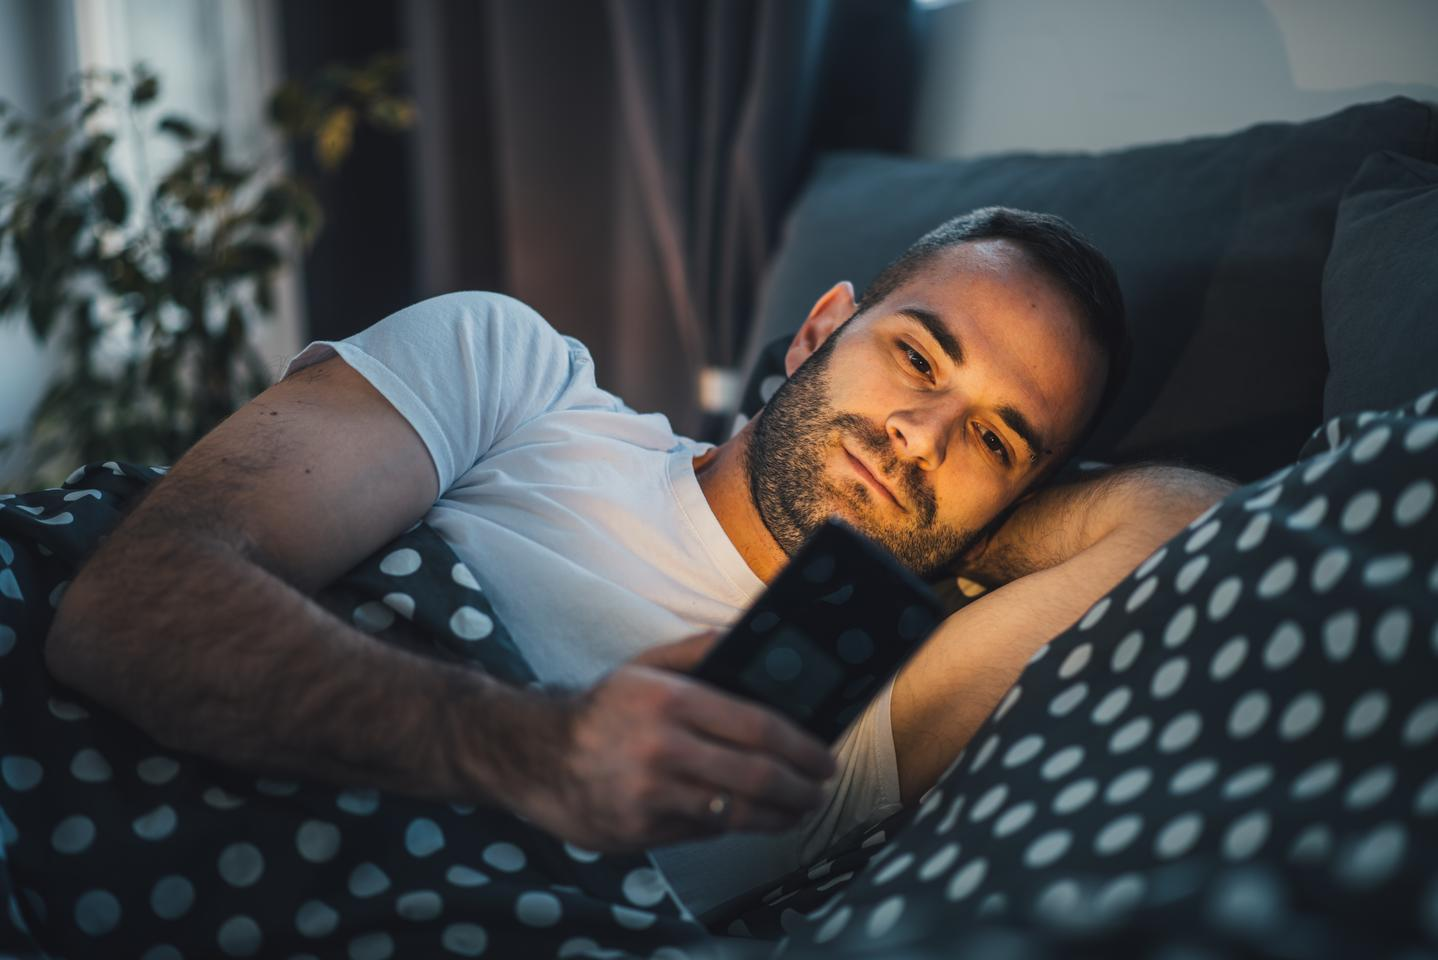 Researchers suggest smartphone night modes may not be doing much at all to improve your sleep quality